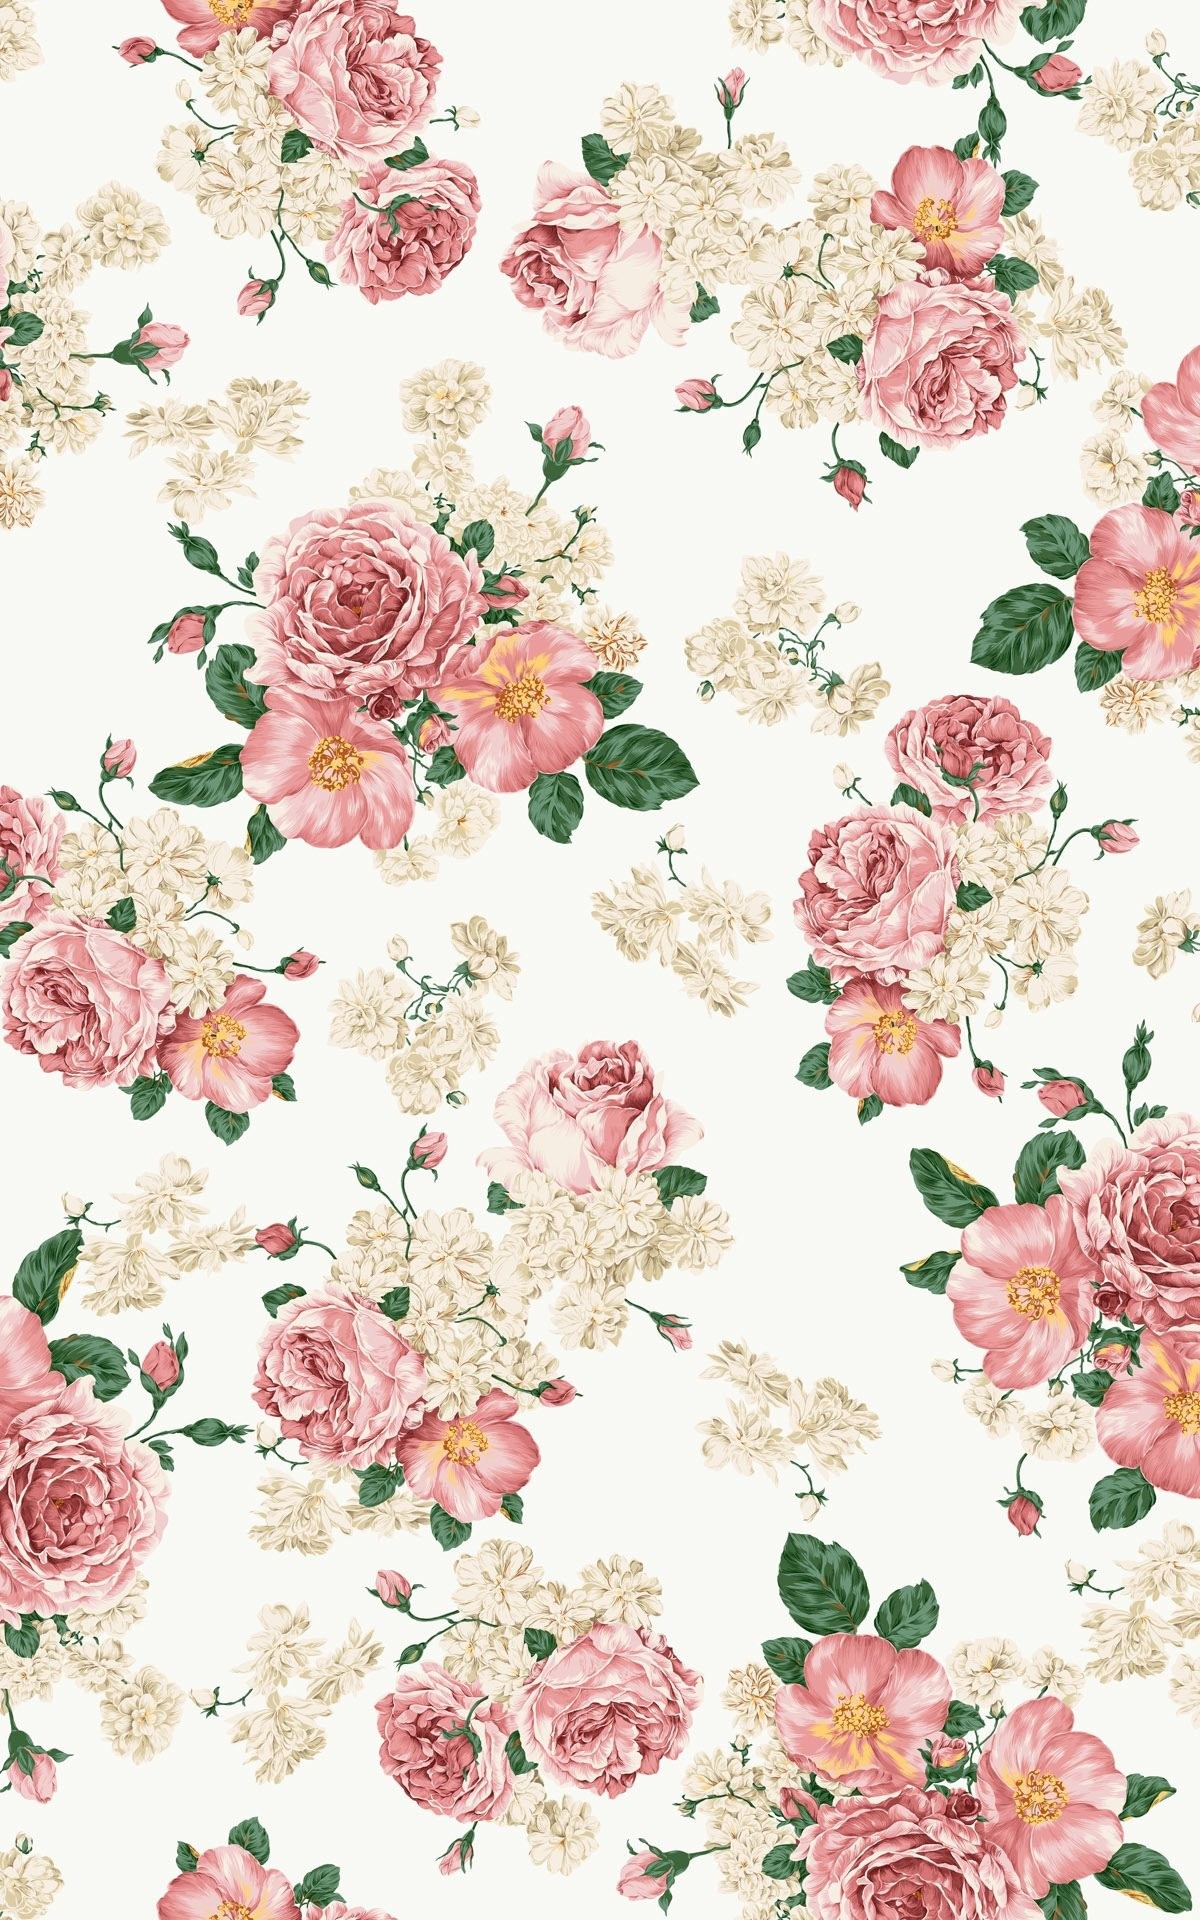 Antique flower wallpaper 50 images 1200x1920 high res vintage pink flower wallpaper mightylinksfo